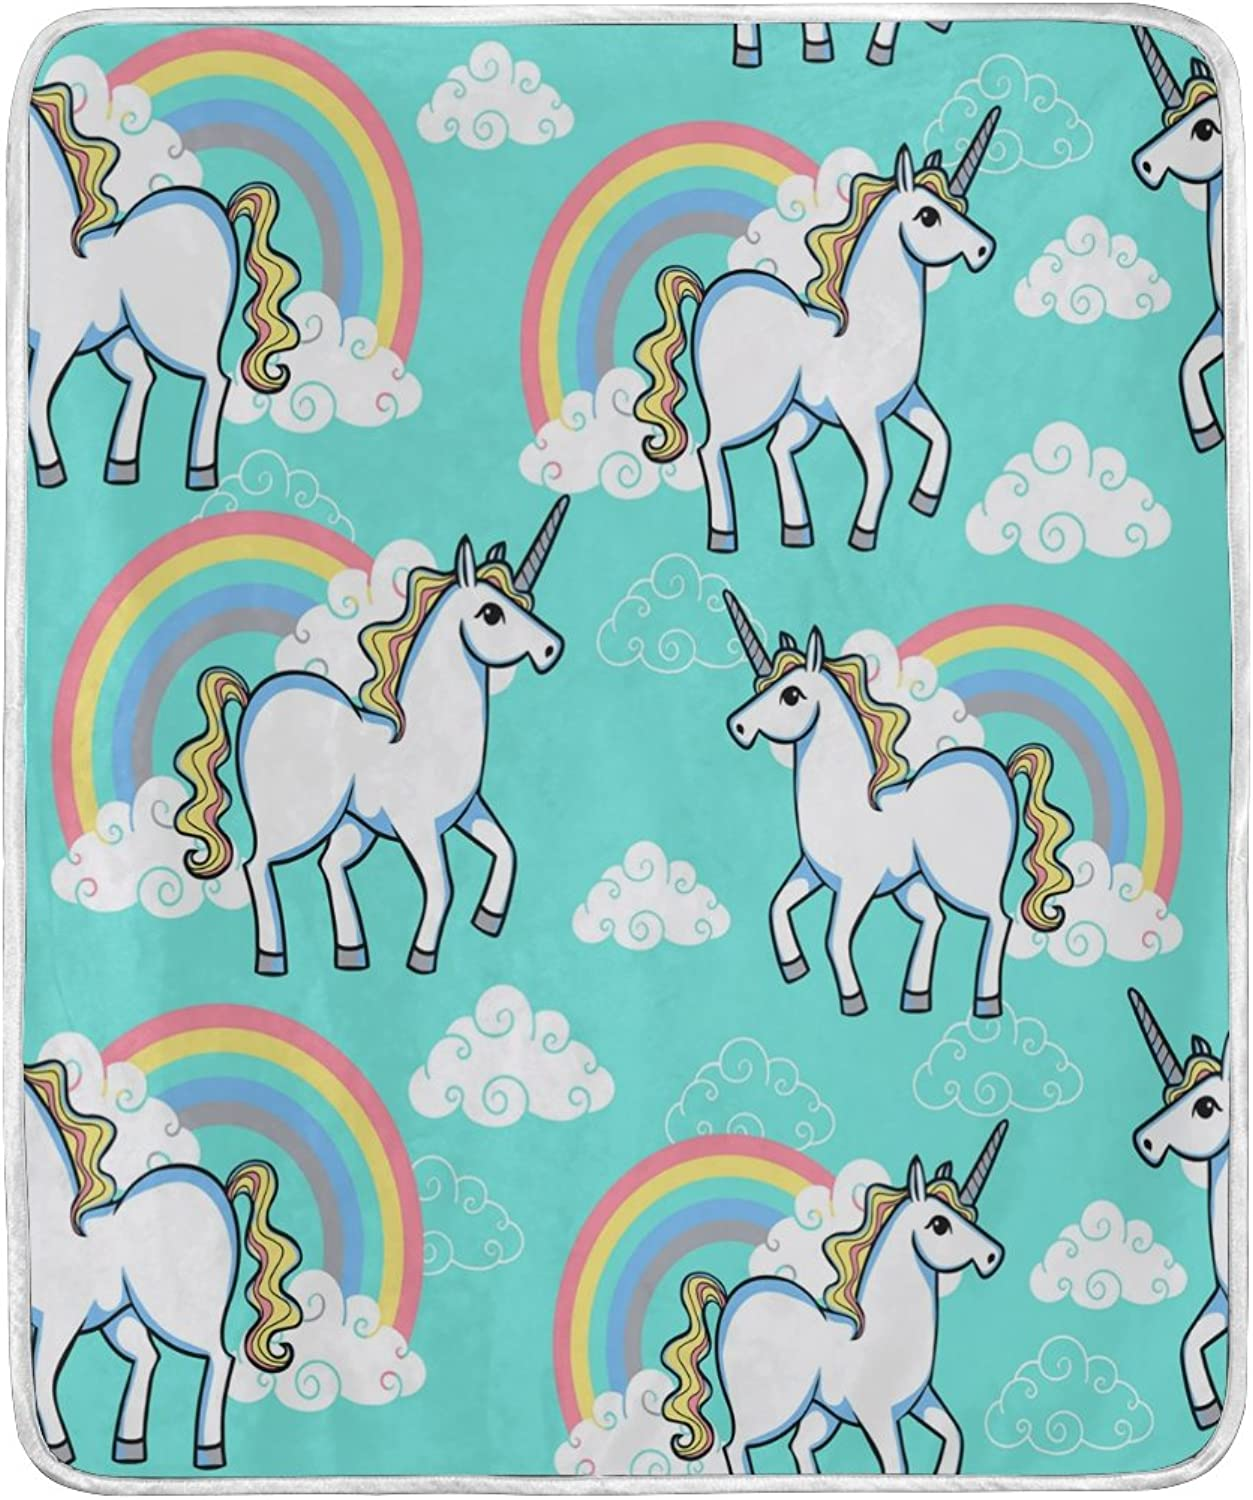 WOZO Home Decor Rainbow Unicorn Cloud Blanket Soft Warm Blankets for Bed Couch Sofa Lightweight Travelling Camping 60 x 50 Inch Throw Size for Kids Boys Women